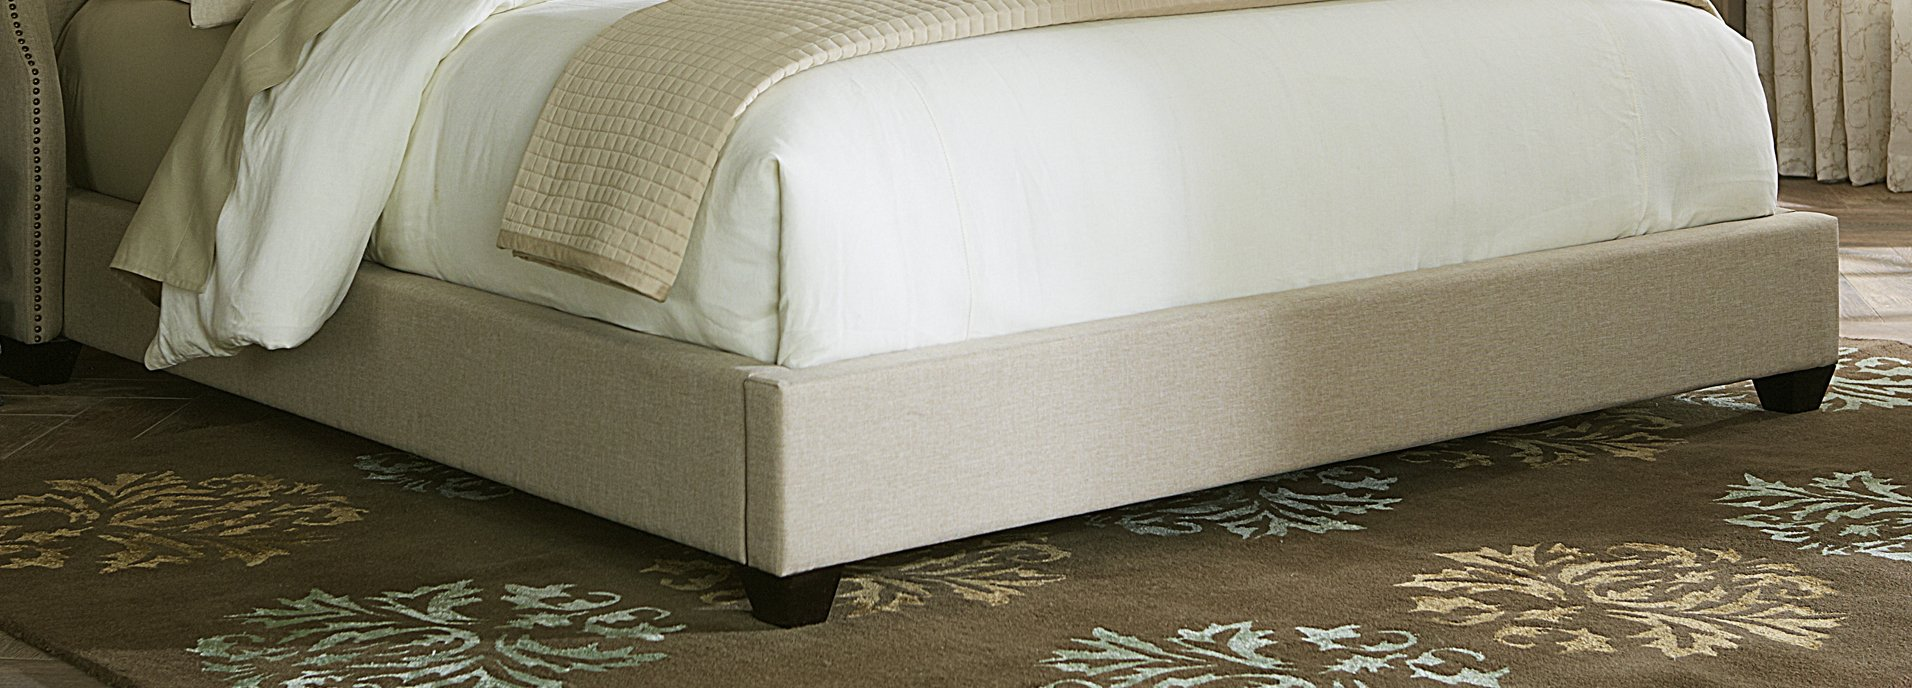 Liberty Furniture 100-BR23F Upholstered Footboard, Queen, Natural